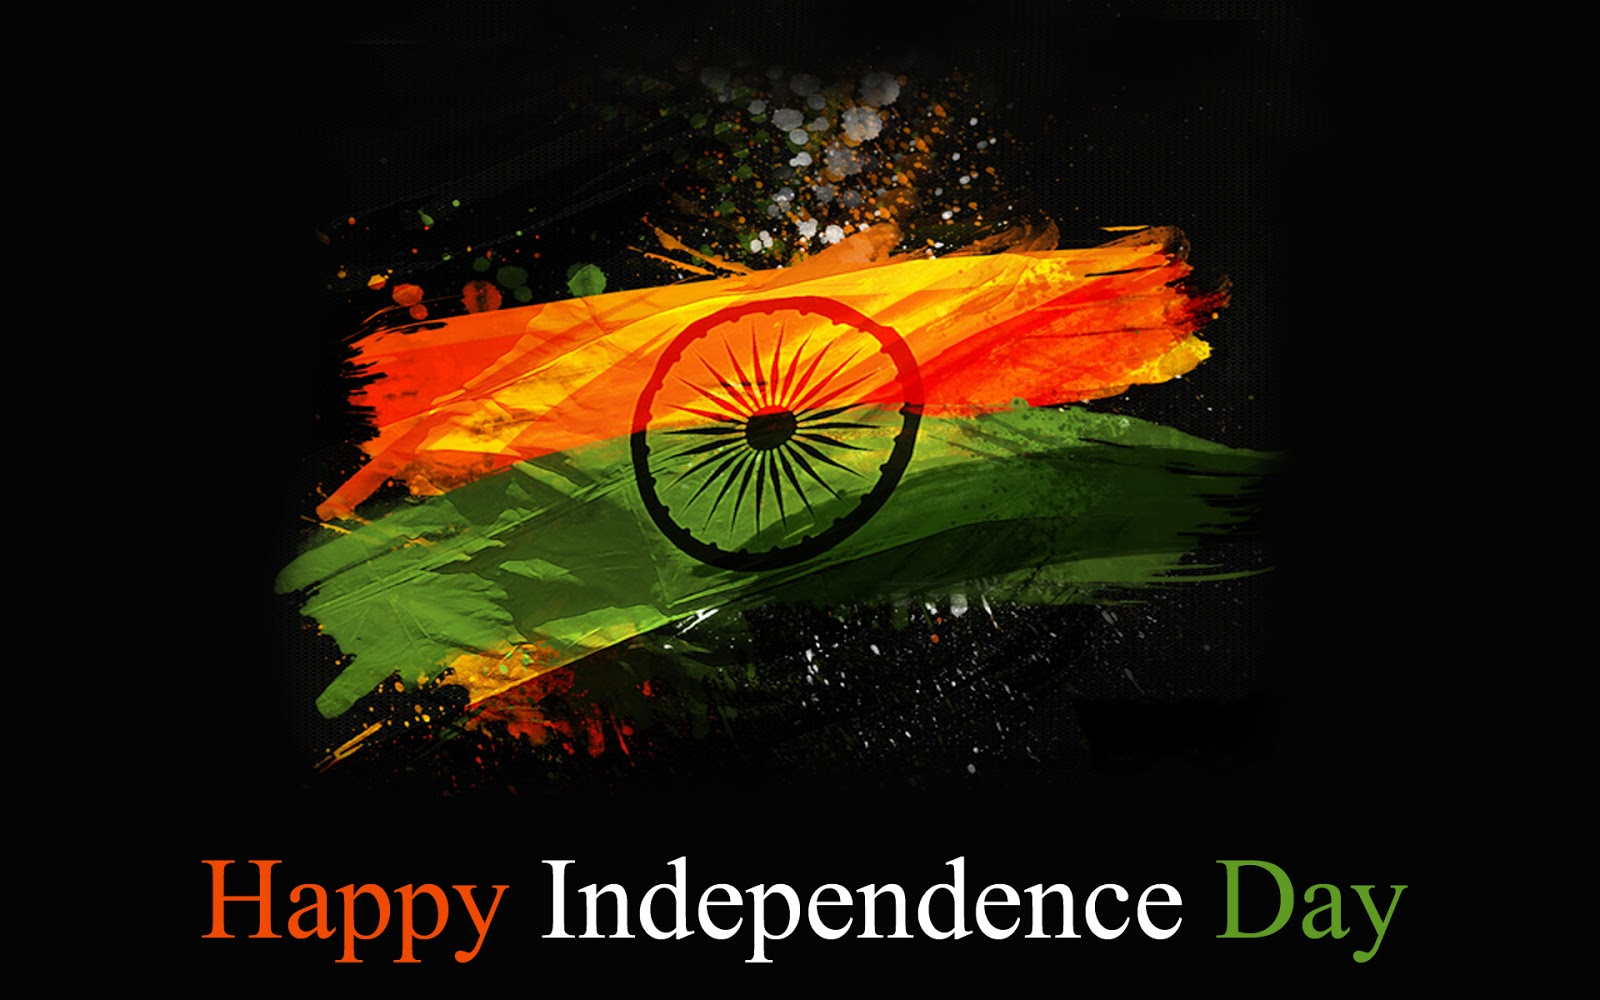 short essay on independence day for kids in hindi essay on ideal teacher in hindi types of validity in research essay on village in hindi · independence day essay